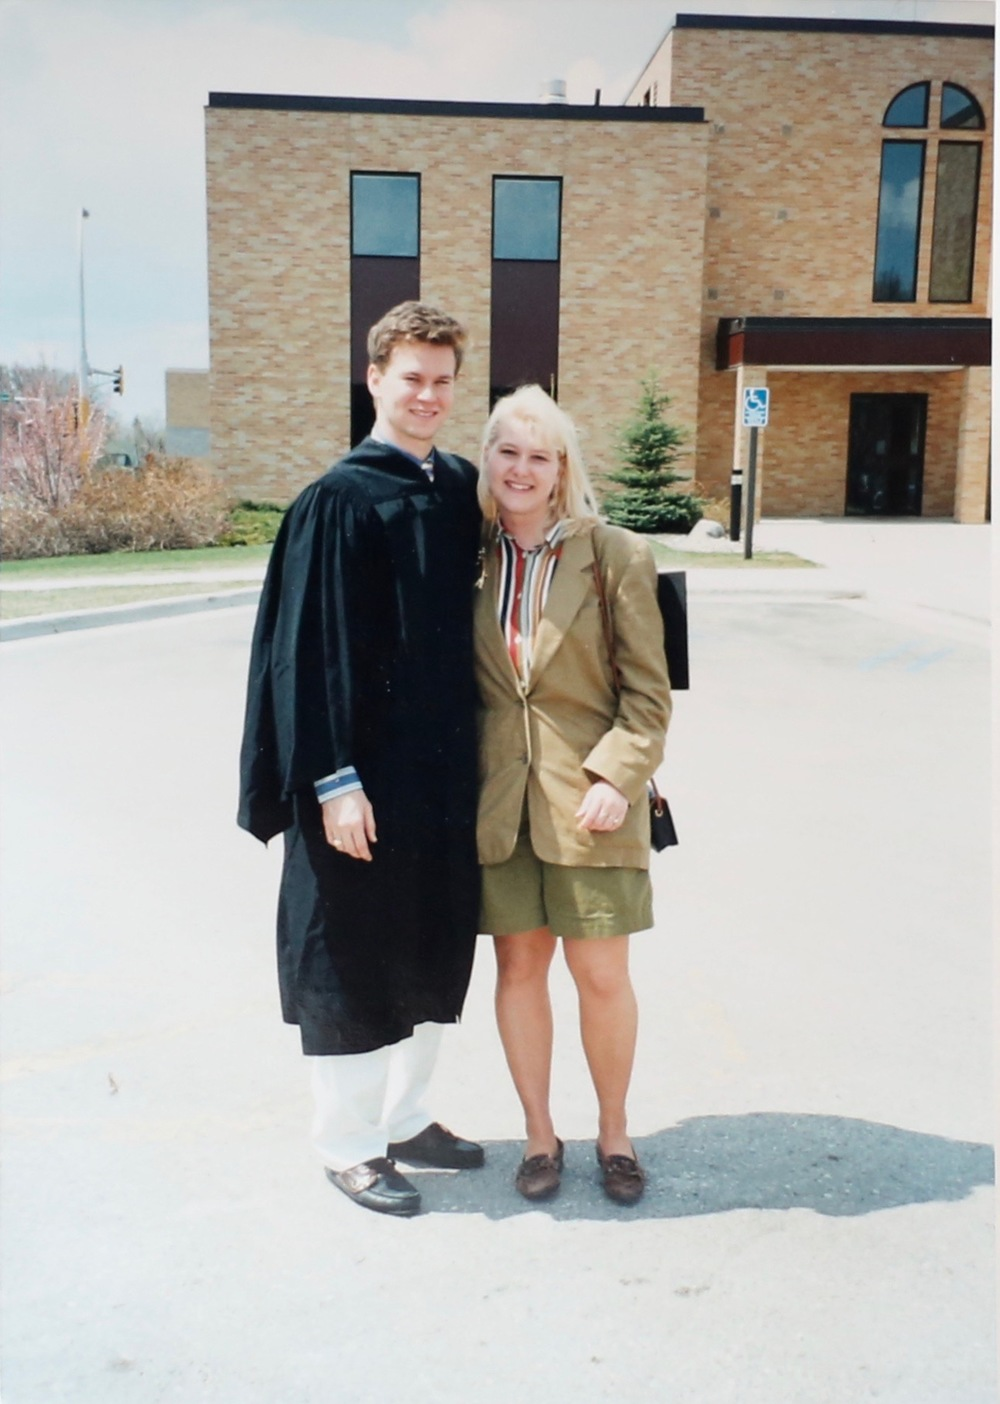 The Author Daniel Maurer in one of his life's previous incarnations. This photo is from 1994, only two years after the story in the post took place. Moorhead, Minnesota – Concordia College Graduation.